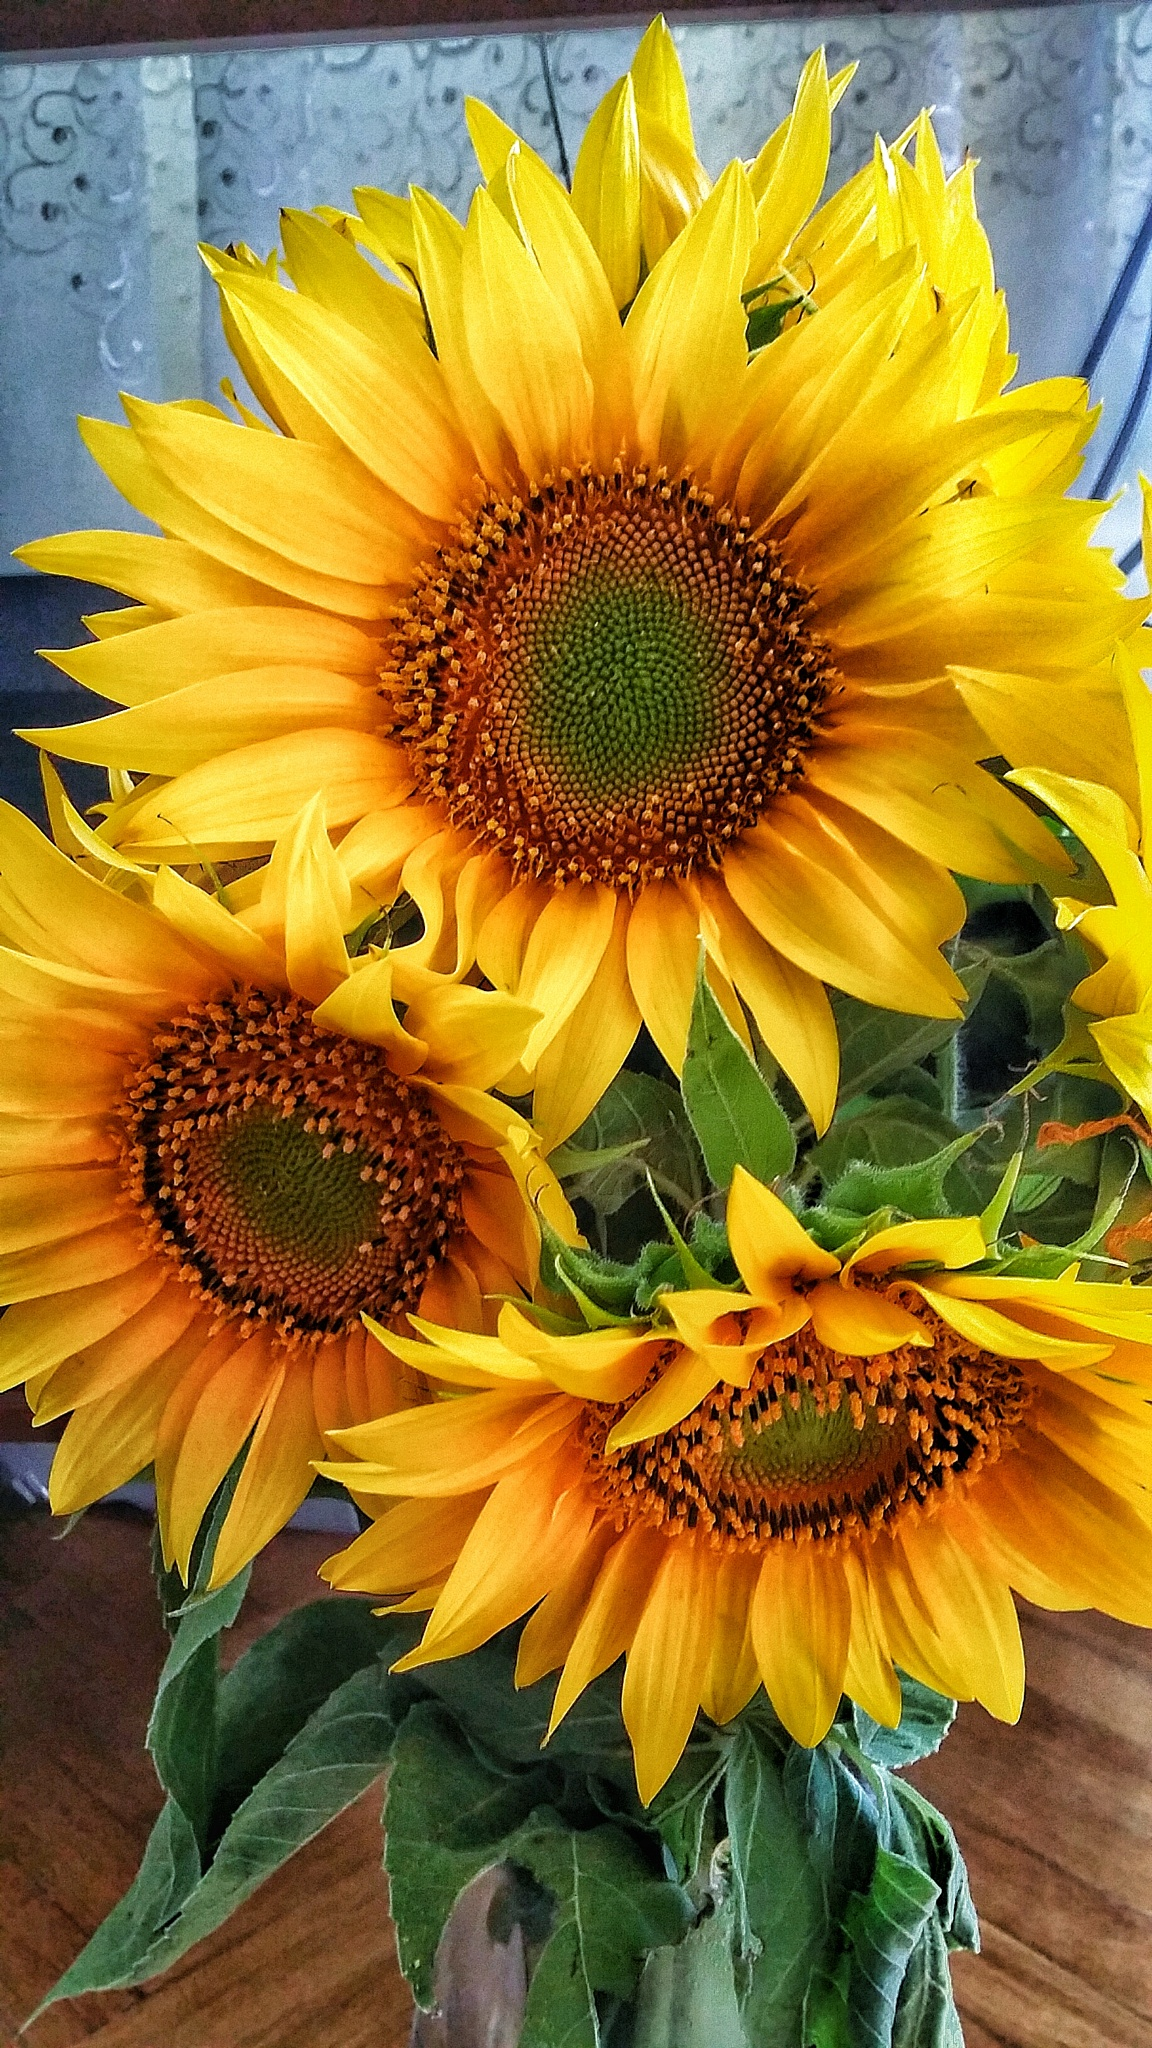 Sunflower 2 by Costin0509